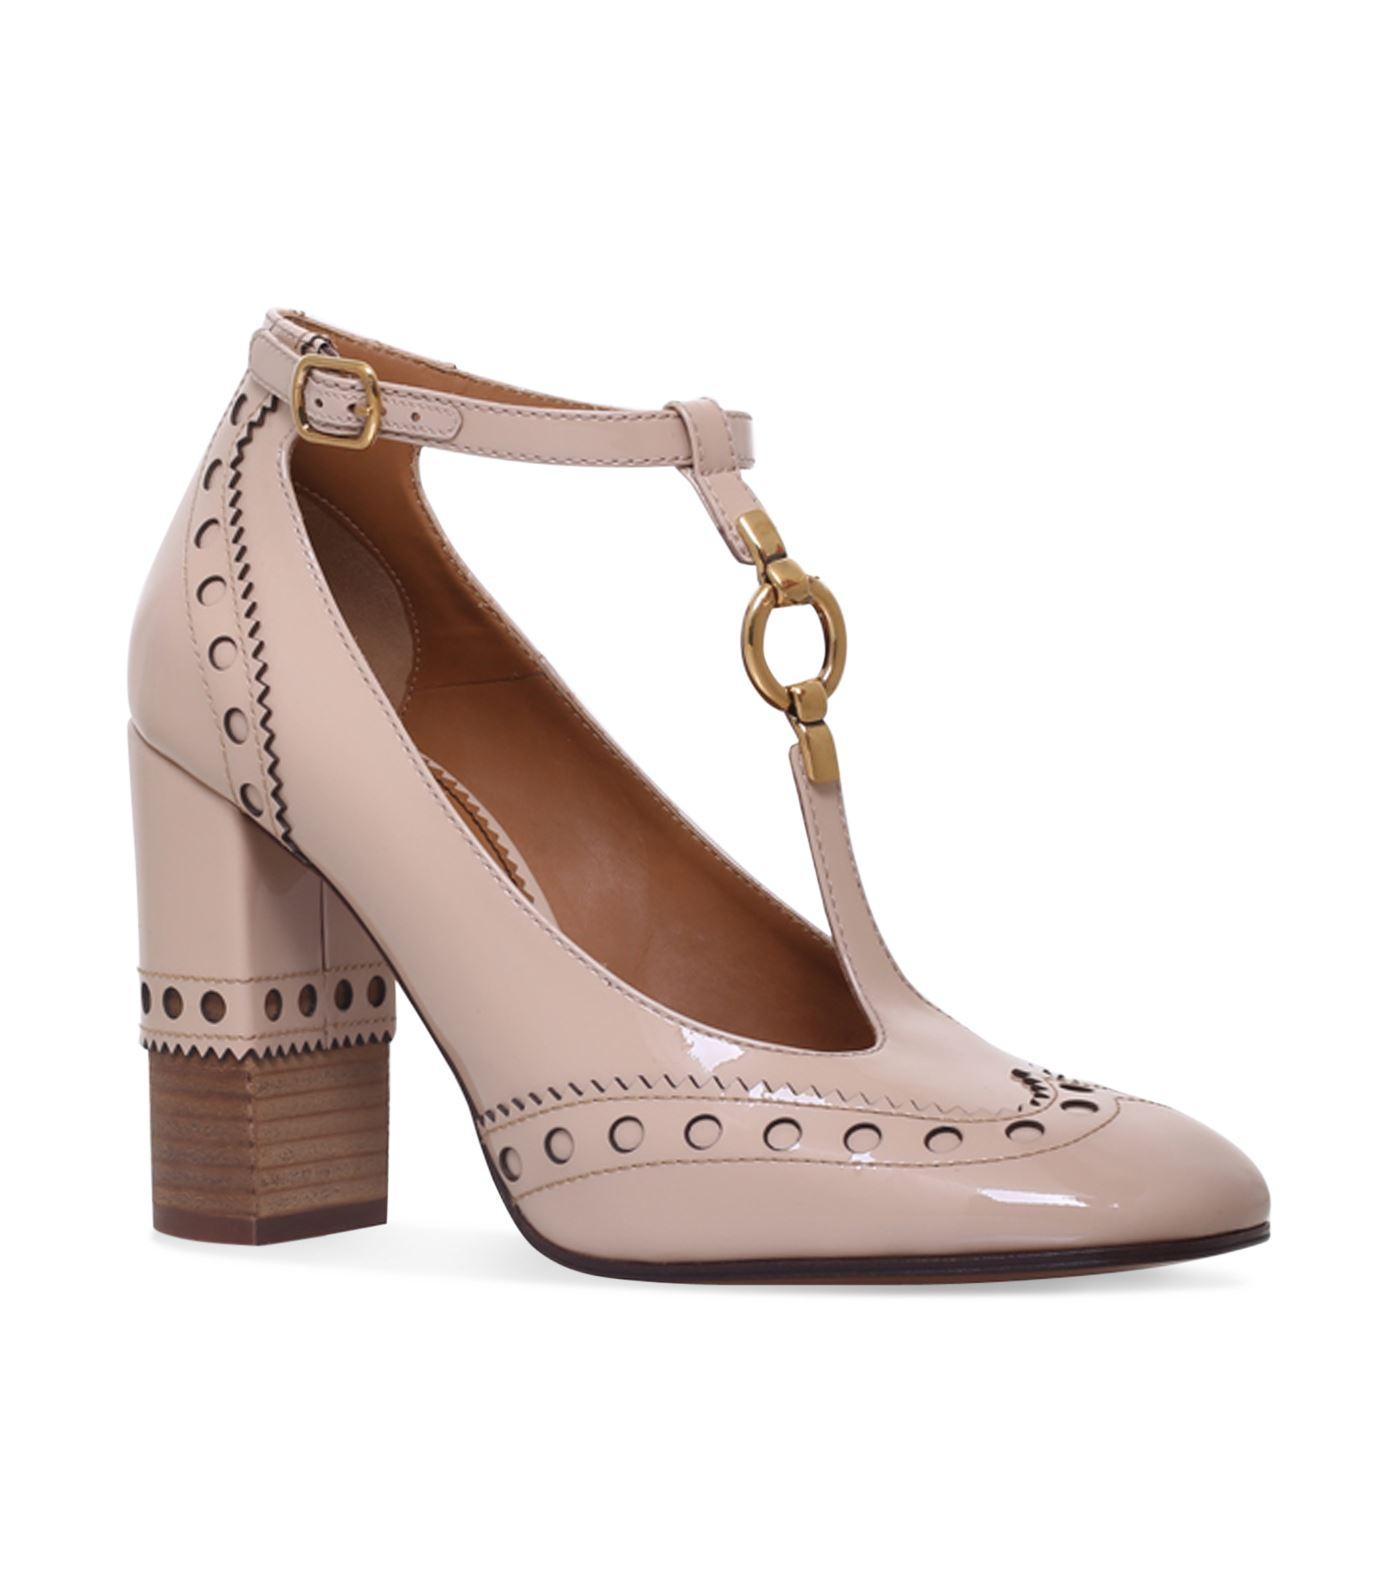 ChloÉ Perry T-bar Pumps 95 In Beige